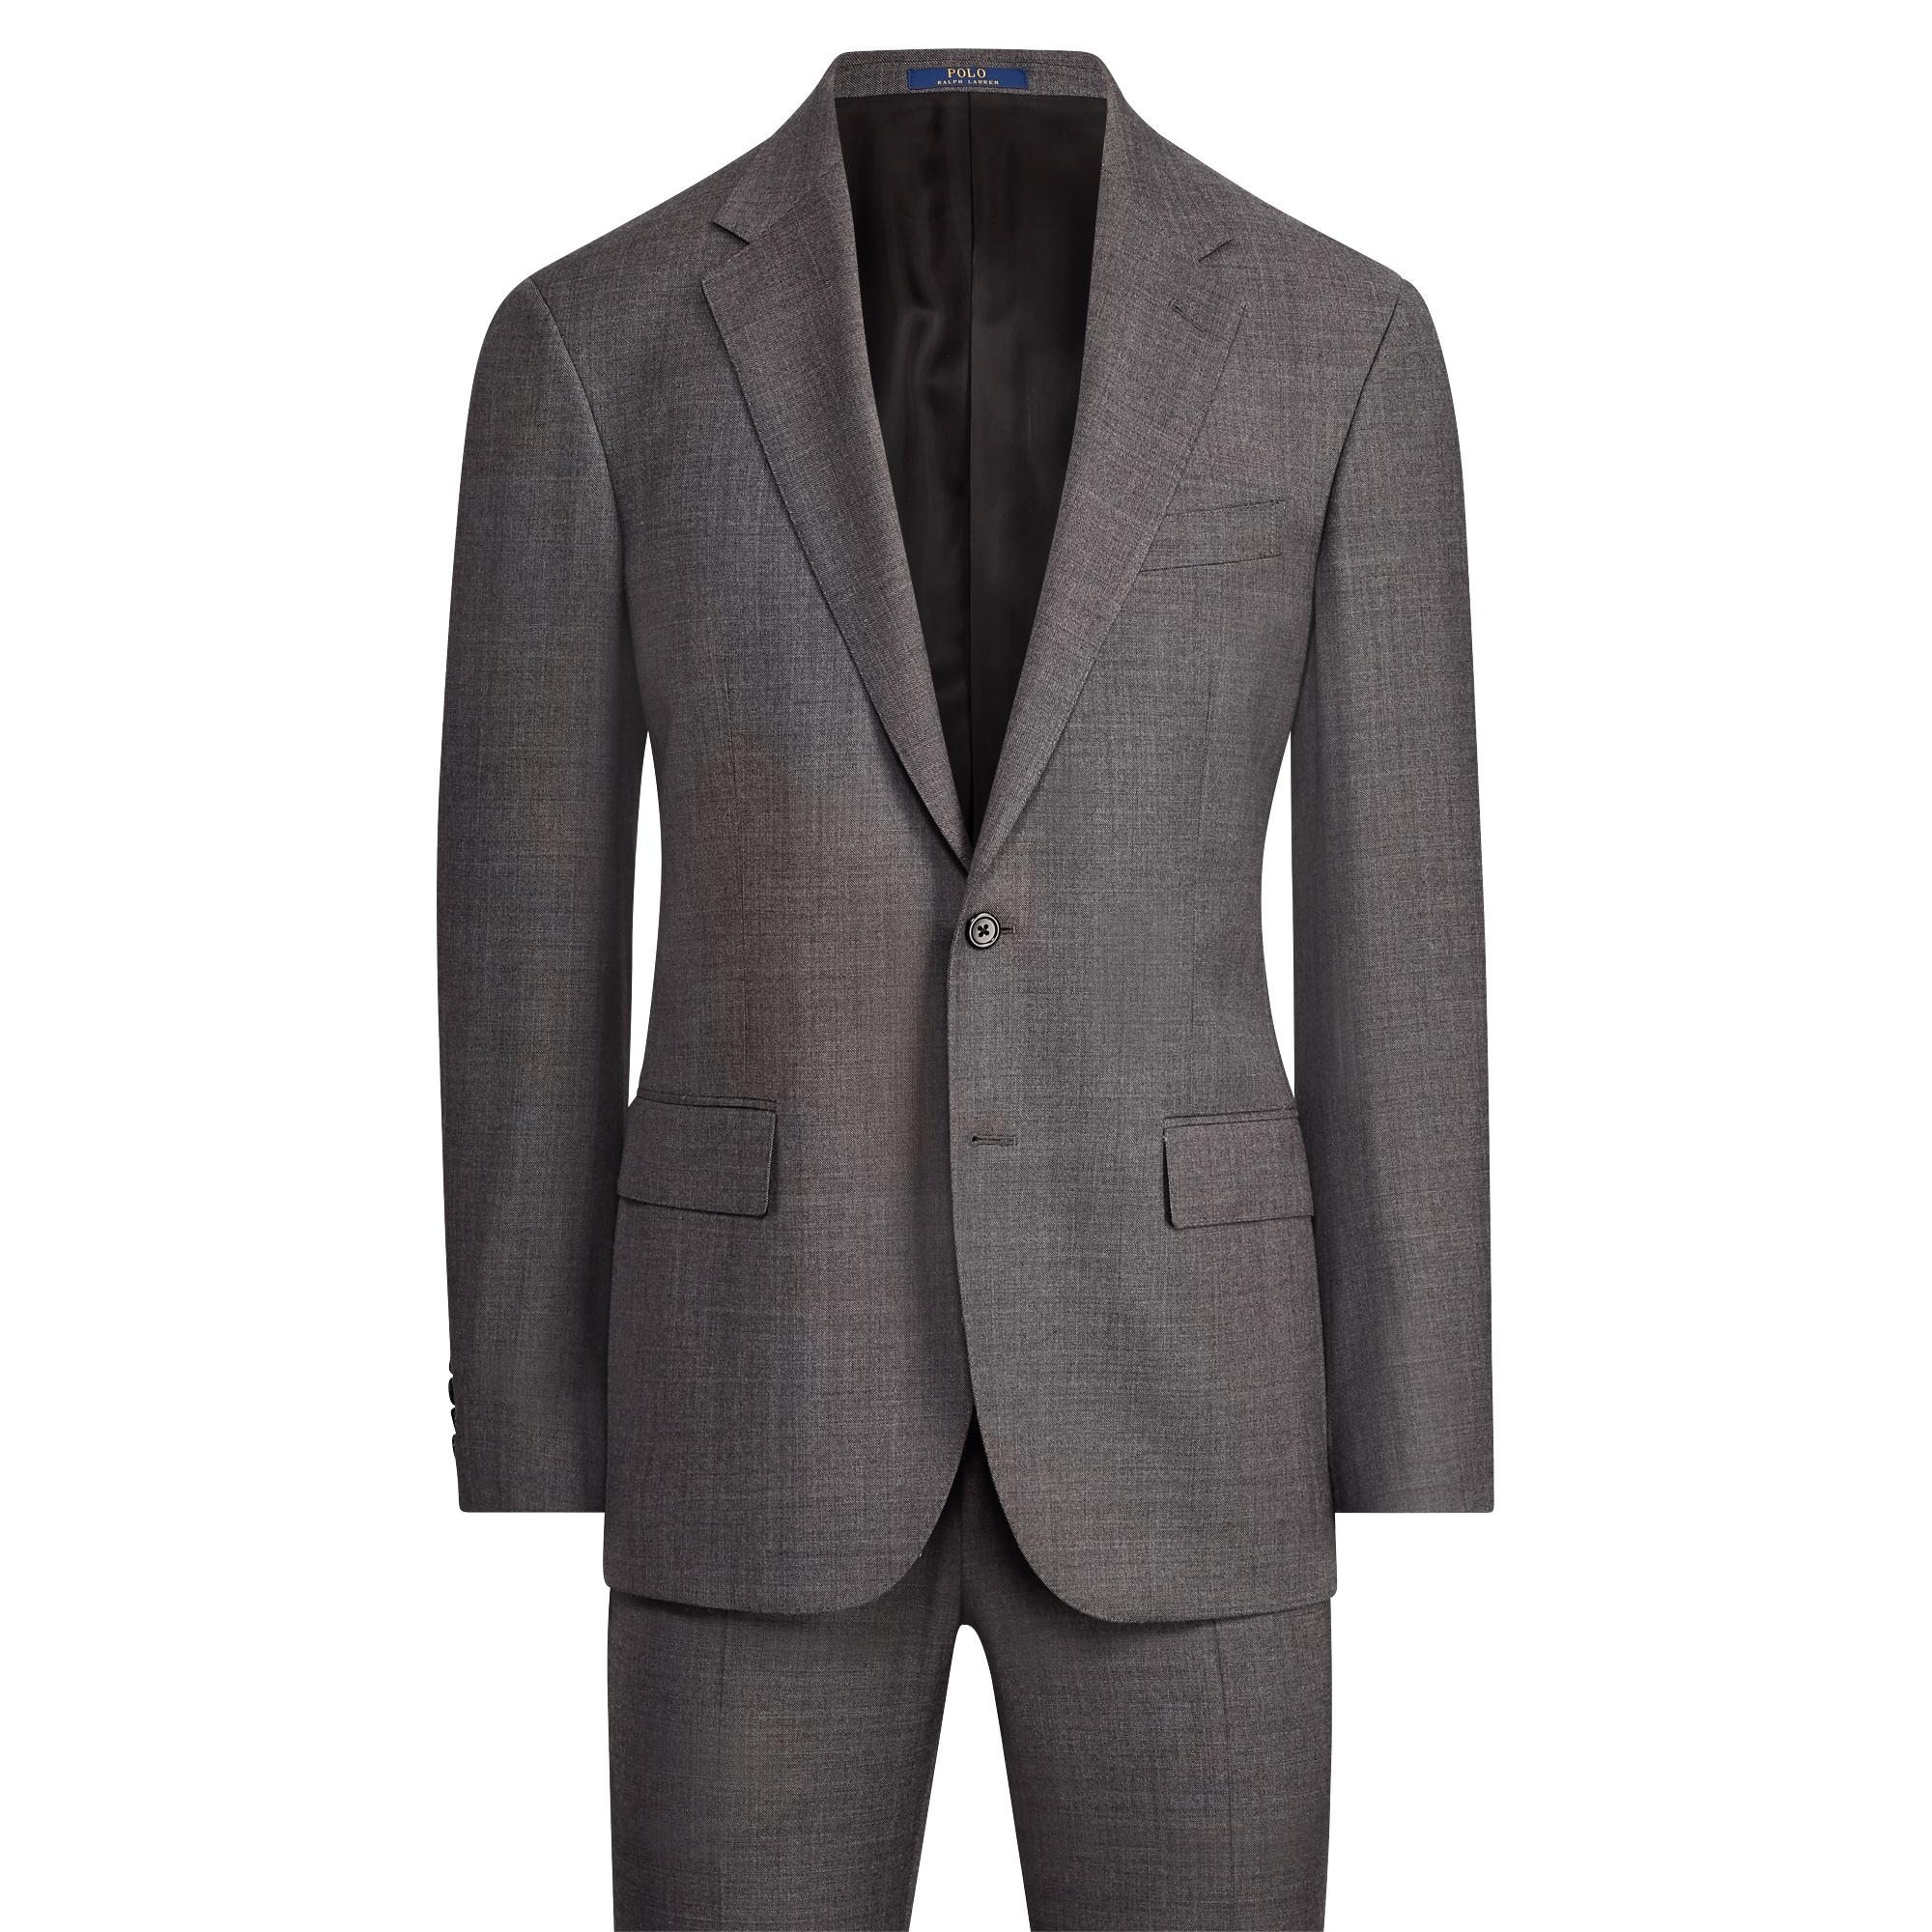 39cfb0bcf7 Polo Ralph Lauren Polo I Wool Sharkskin Suit in Gray for Men - Save ...